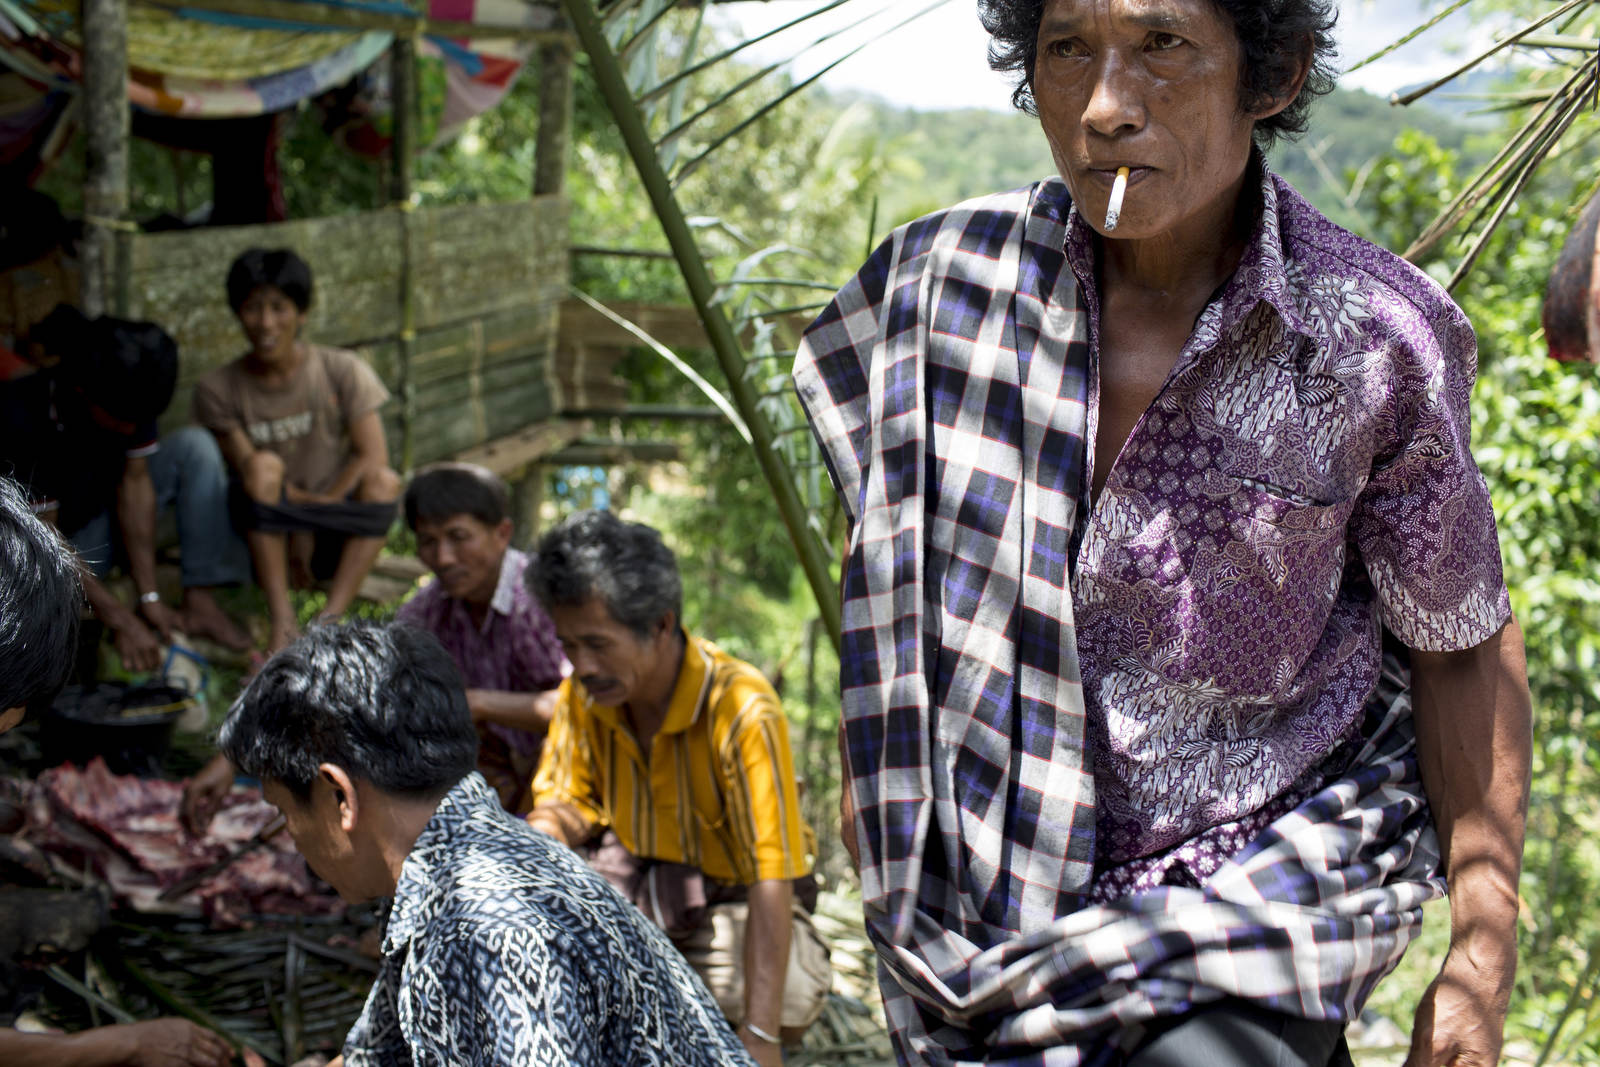 A man takes a smoke break at a funeral after helping butcher and divide the animal sacrifice offerings into portions for the guests.